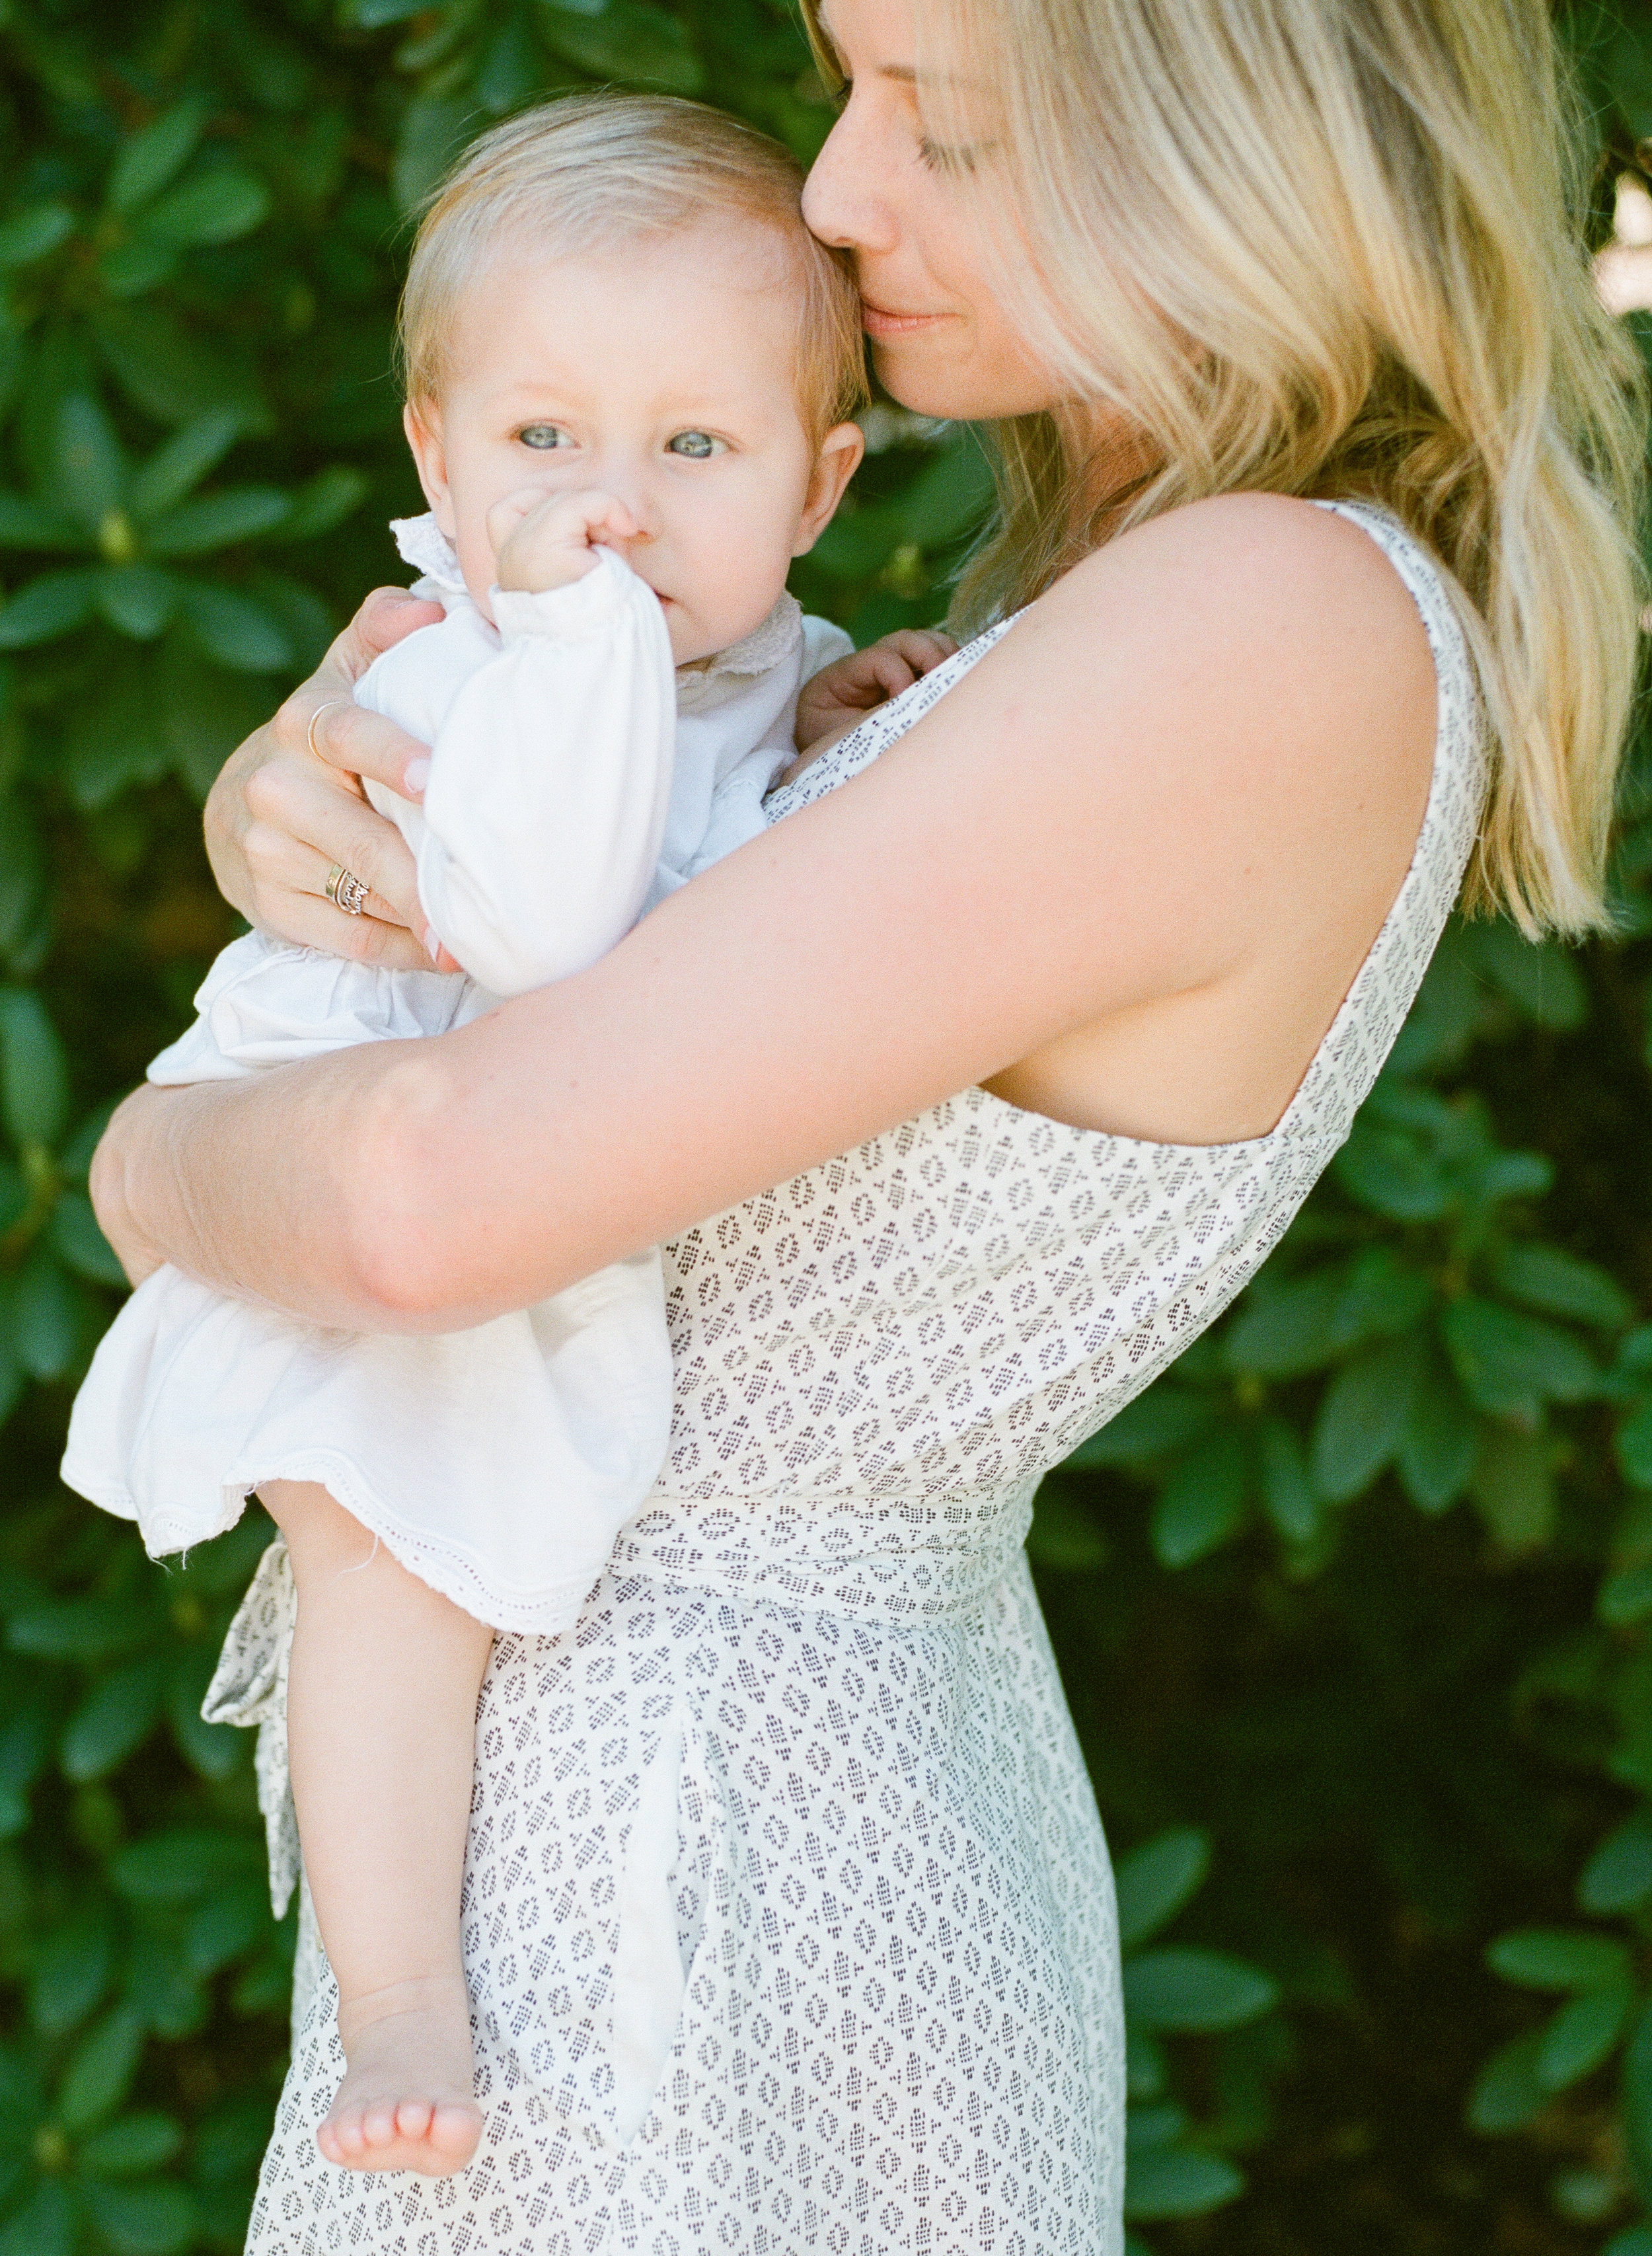 raleigh-lifestyle-family-baby-photographer-lifestyle-photography-003